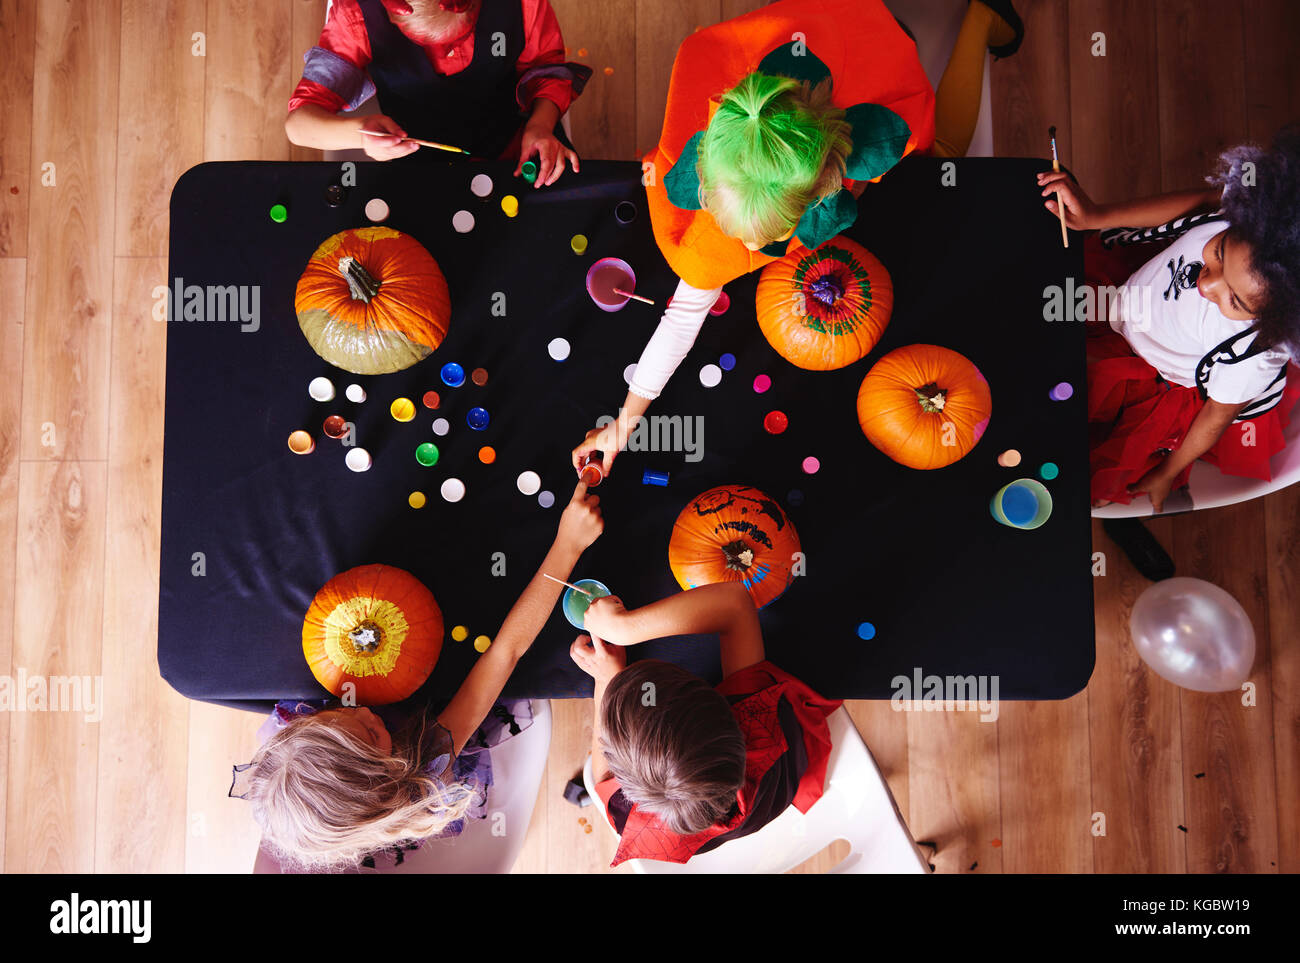 Kids in costume decorating a pumpkin - Stock Image